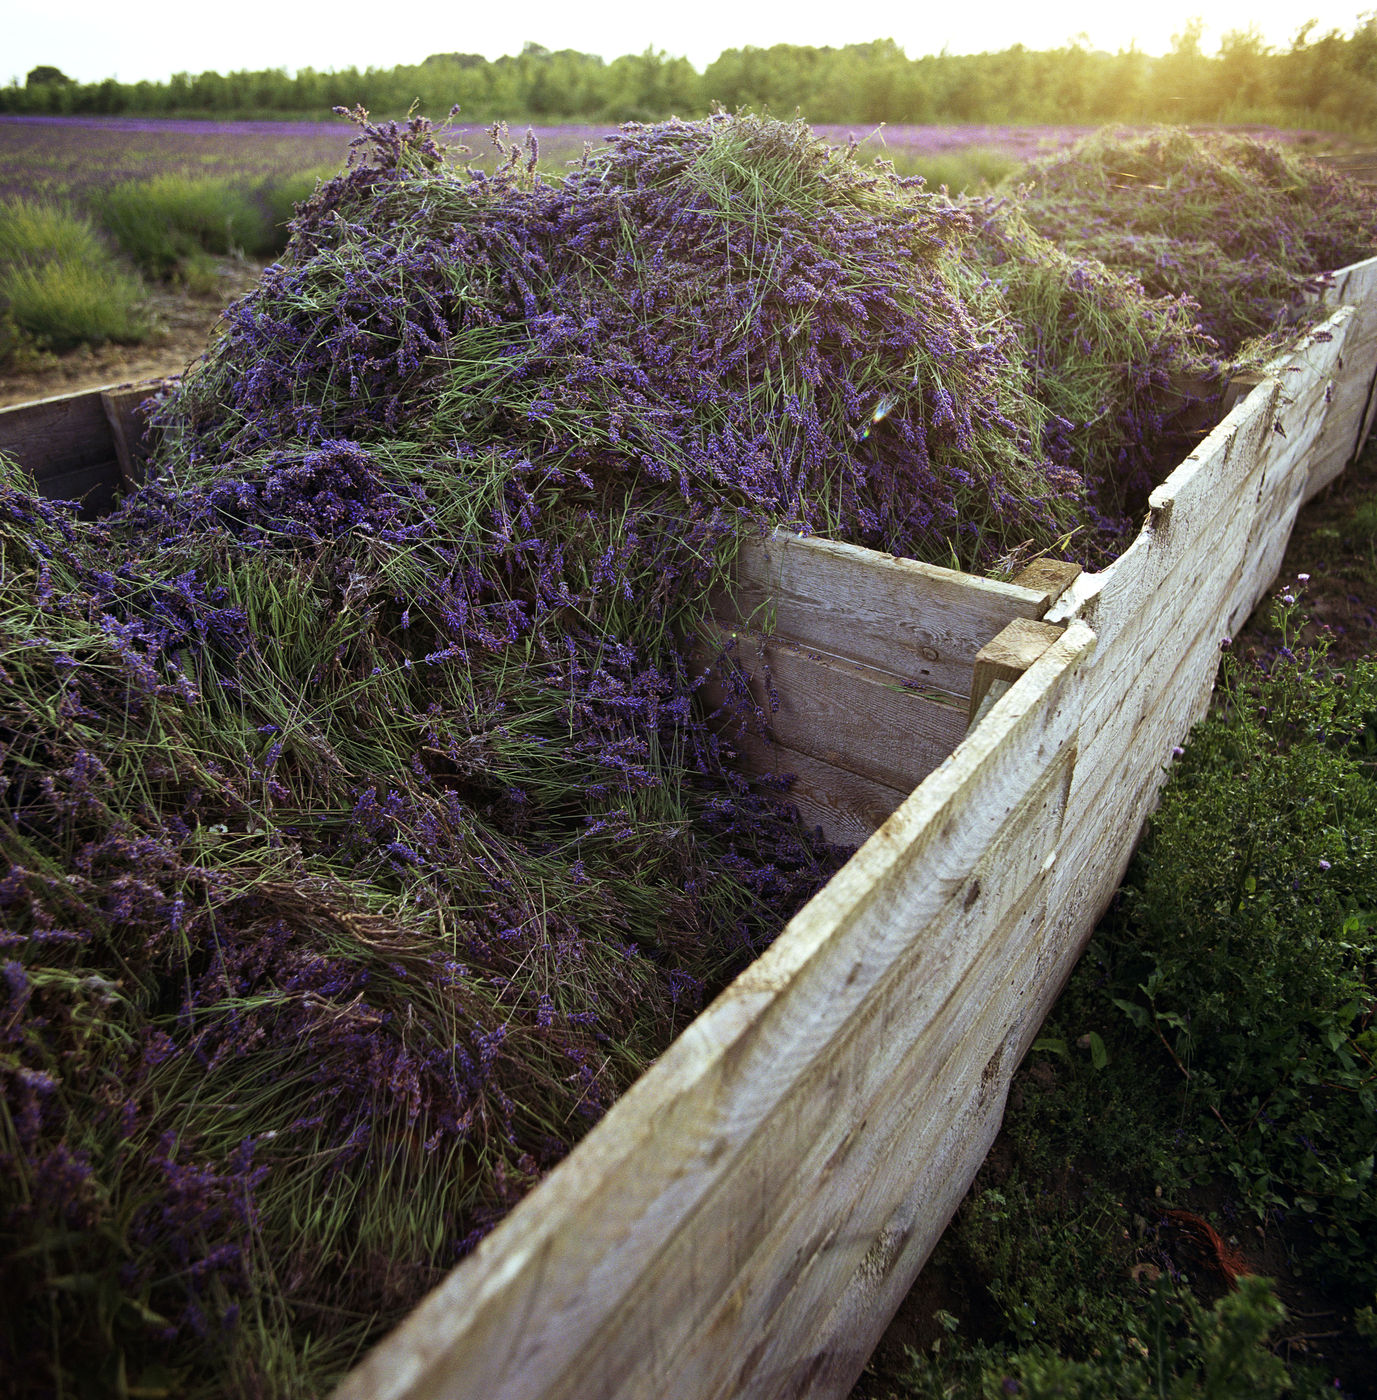 Harvested Lavender Flower Ready to Distill